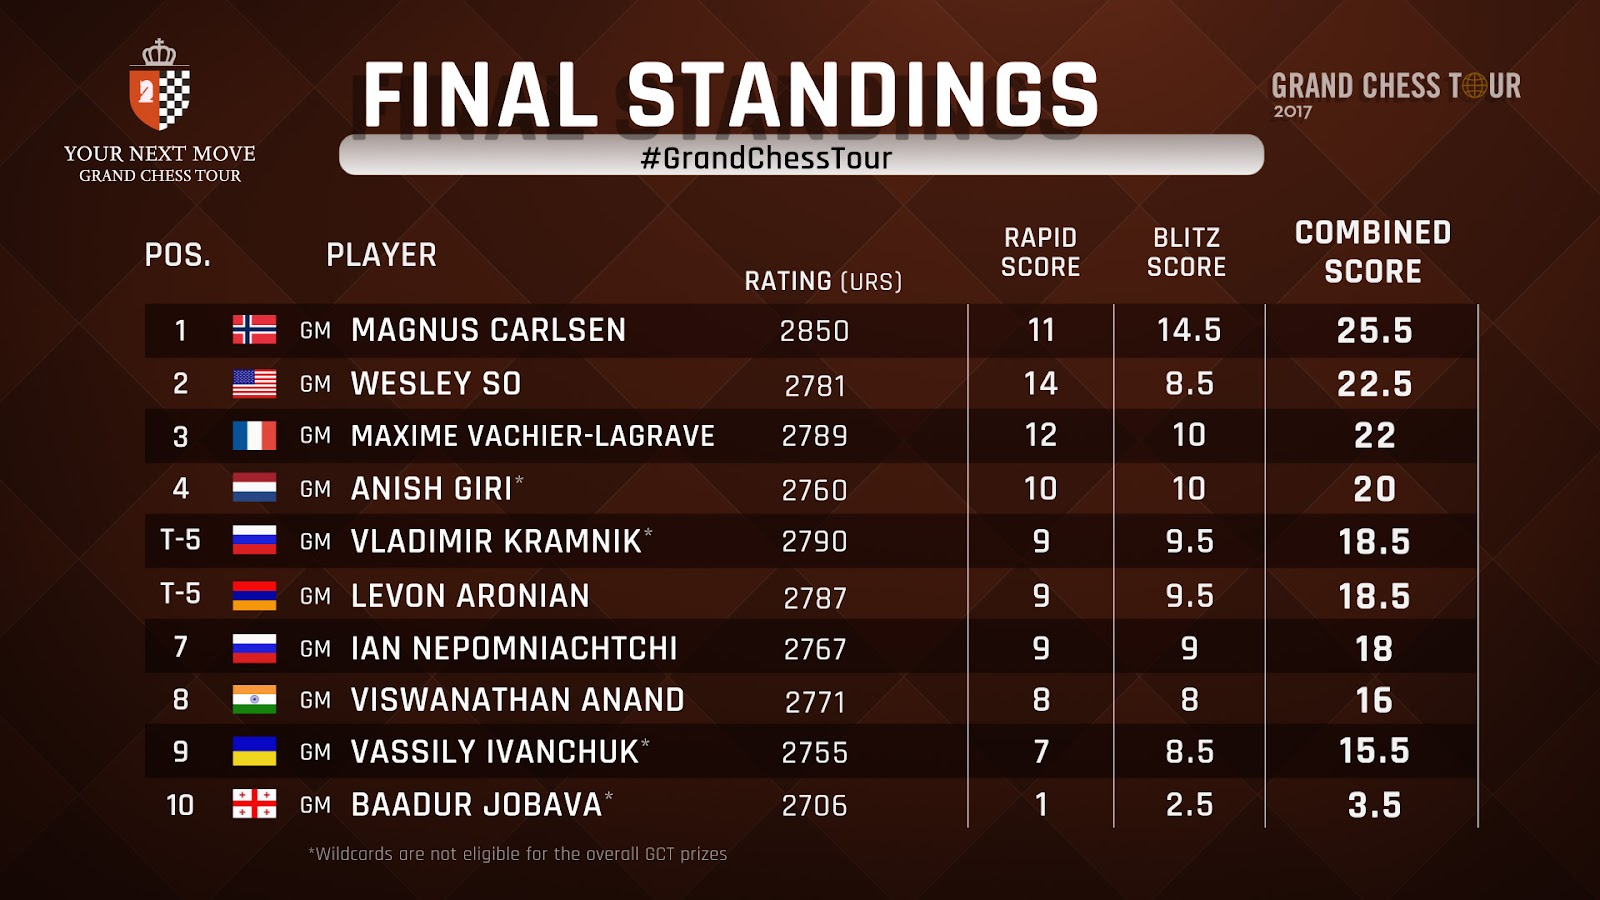 FINAL STANDINGS_AFTER BLITZ R18.jpg